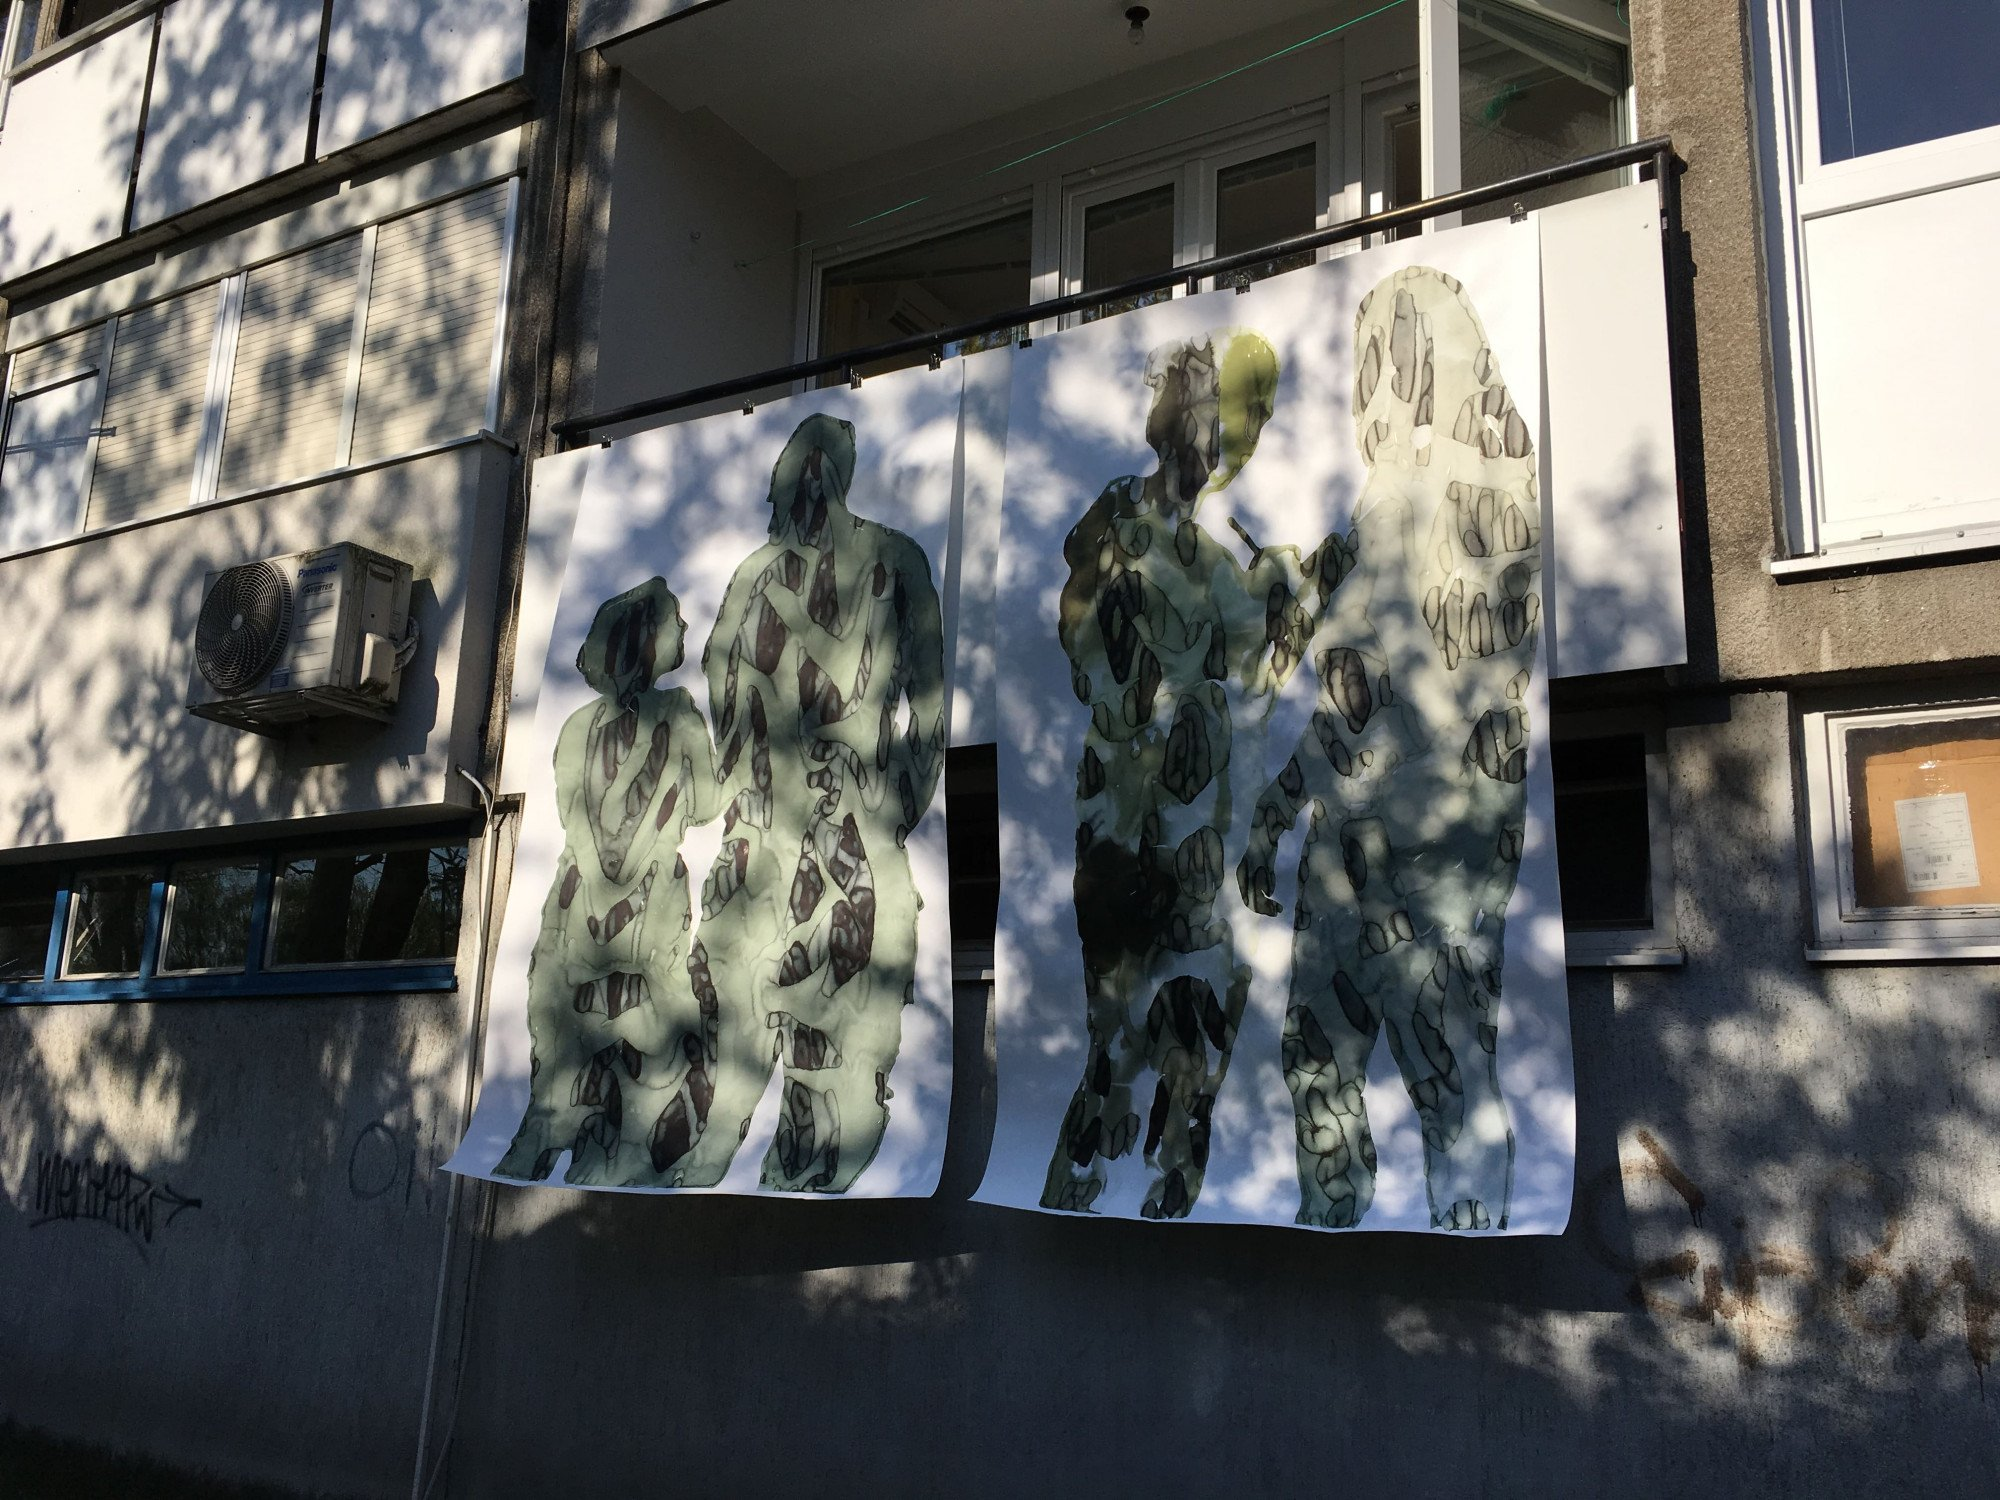 How to Become Invisible, 2020. Balcony Gallery, Zagreb